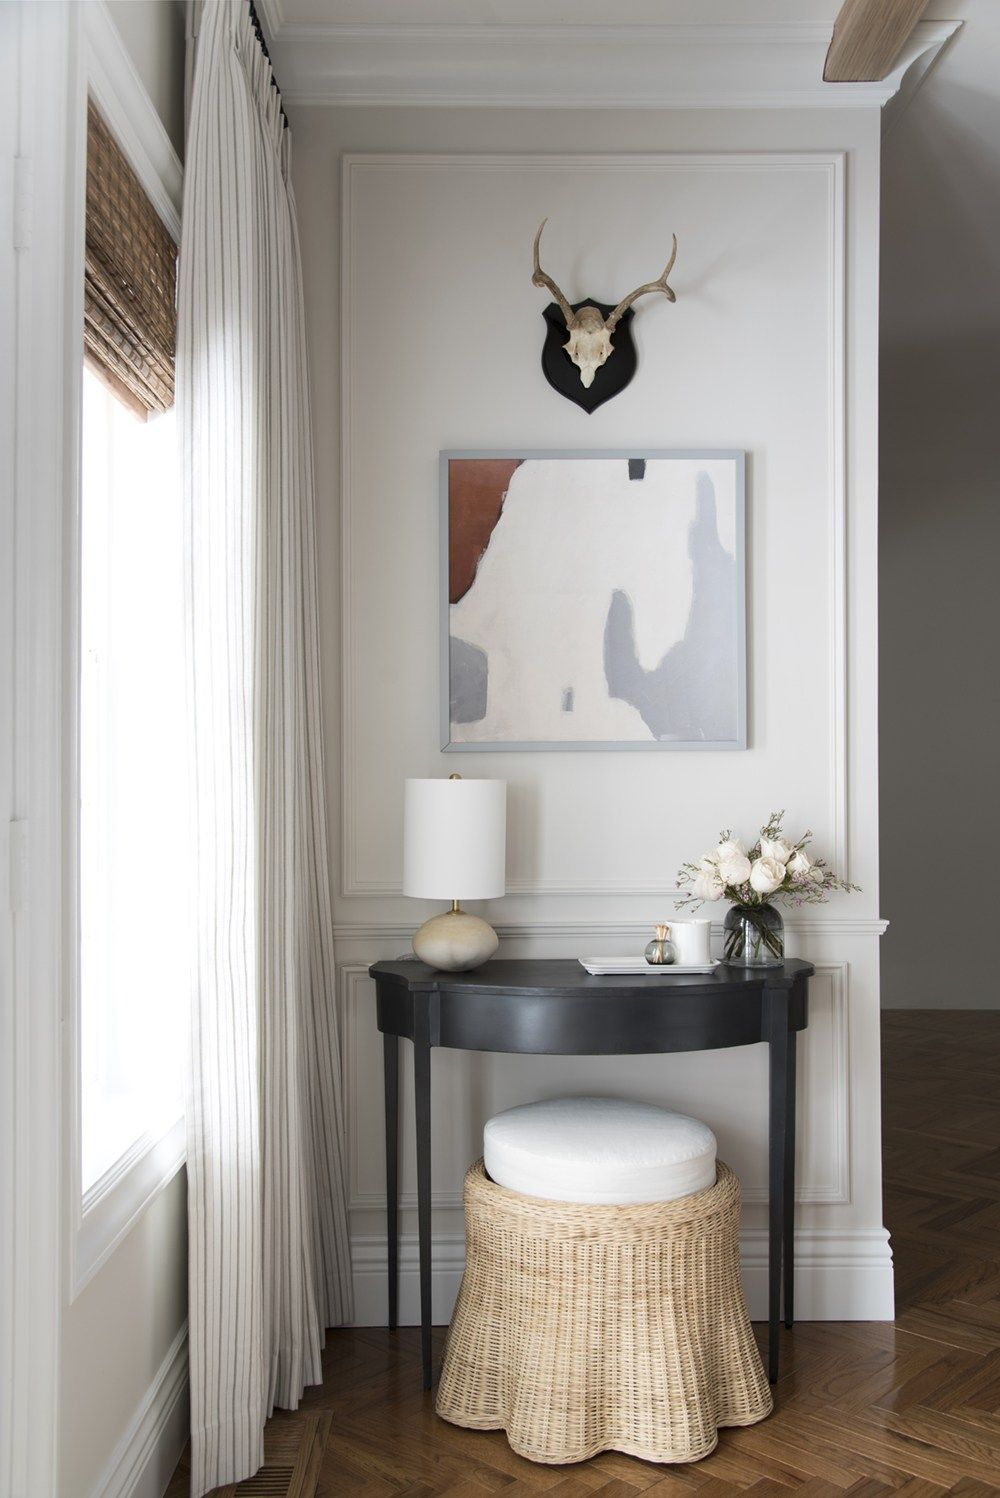 My Best Advice For Novice Renovators Home Diyers Room For Tuesday Formal Living Rooms Tiny Table Lamps Walls Room